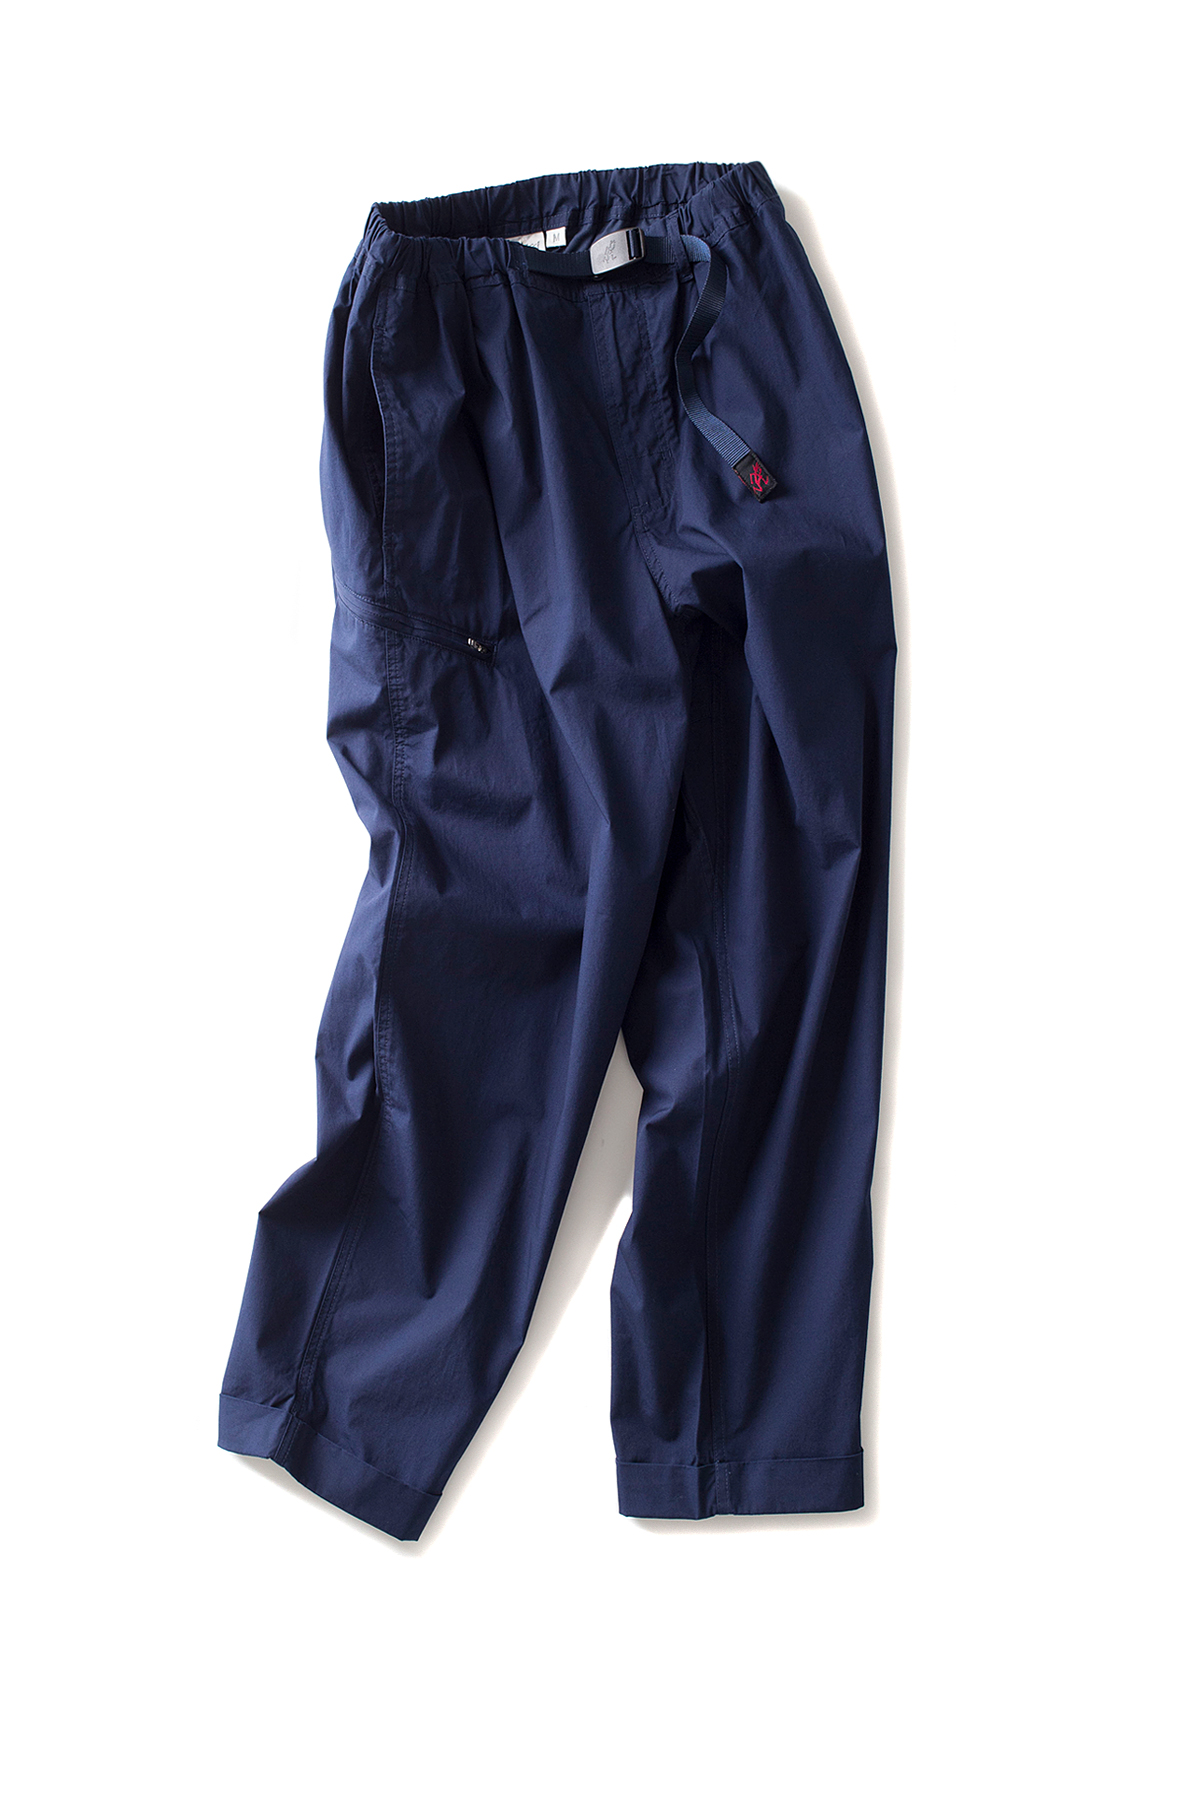 Gramicci : Weather Resort Pants (Navy)